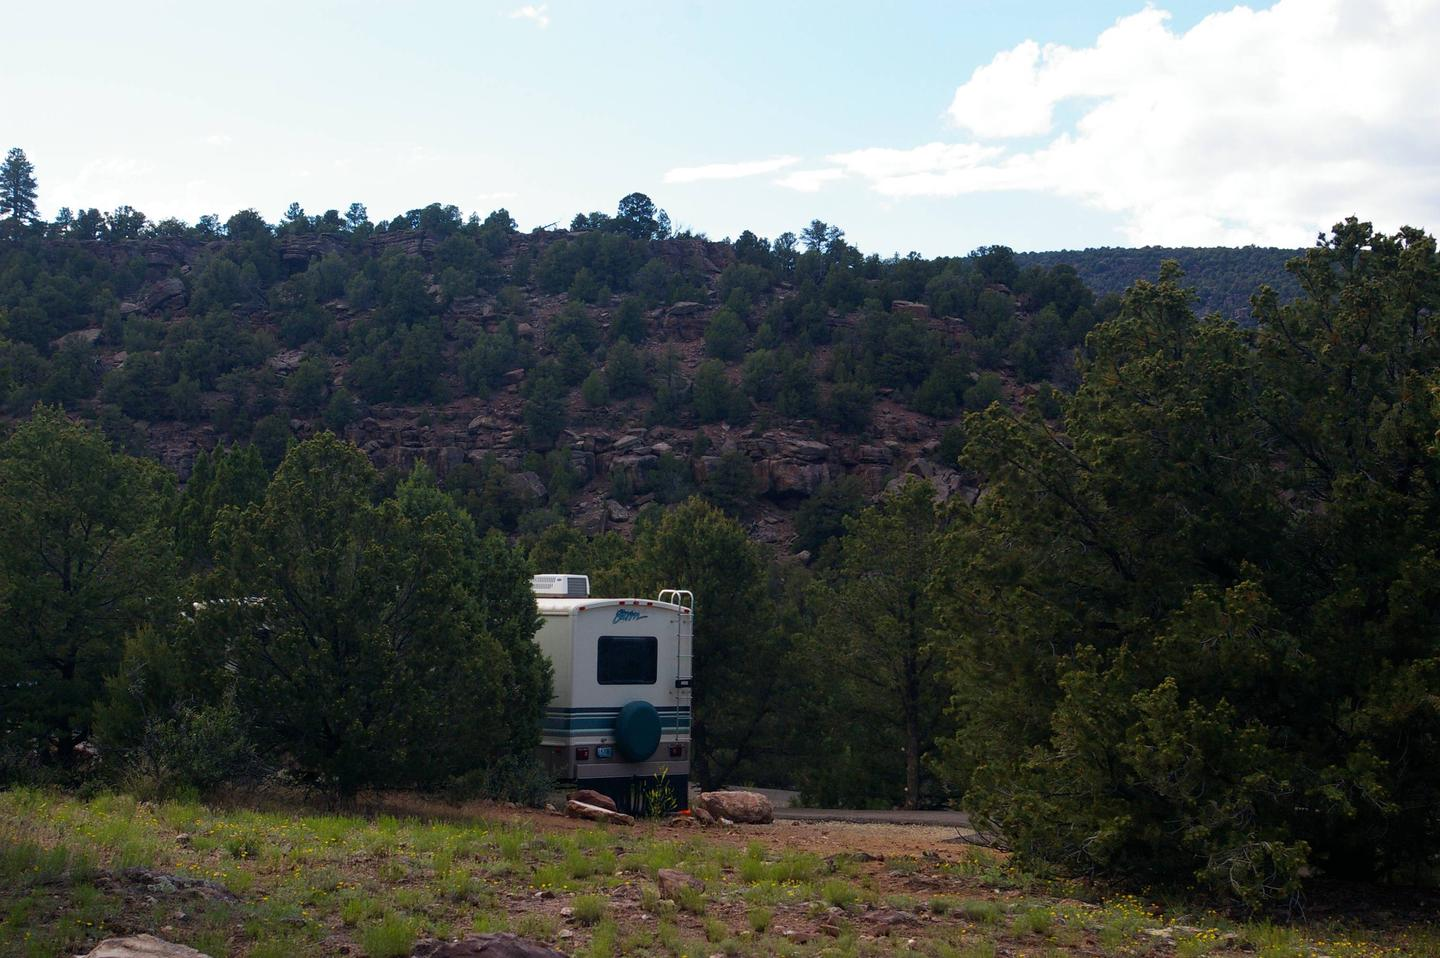 A large motor home is parked in a camp site. There are trees lined on both sides and a hillside with red rocks and trees can be seen from the site.Cedar Springs Campground